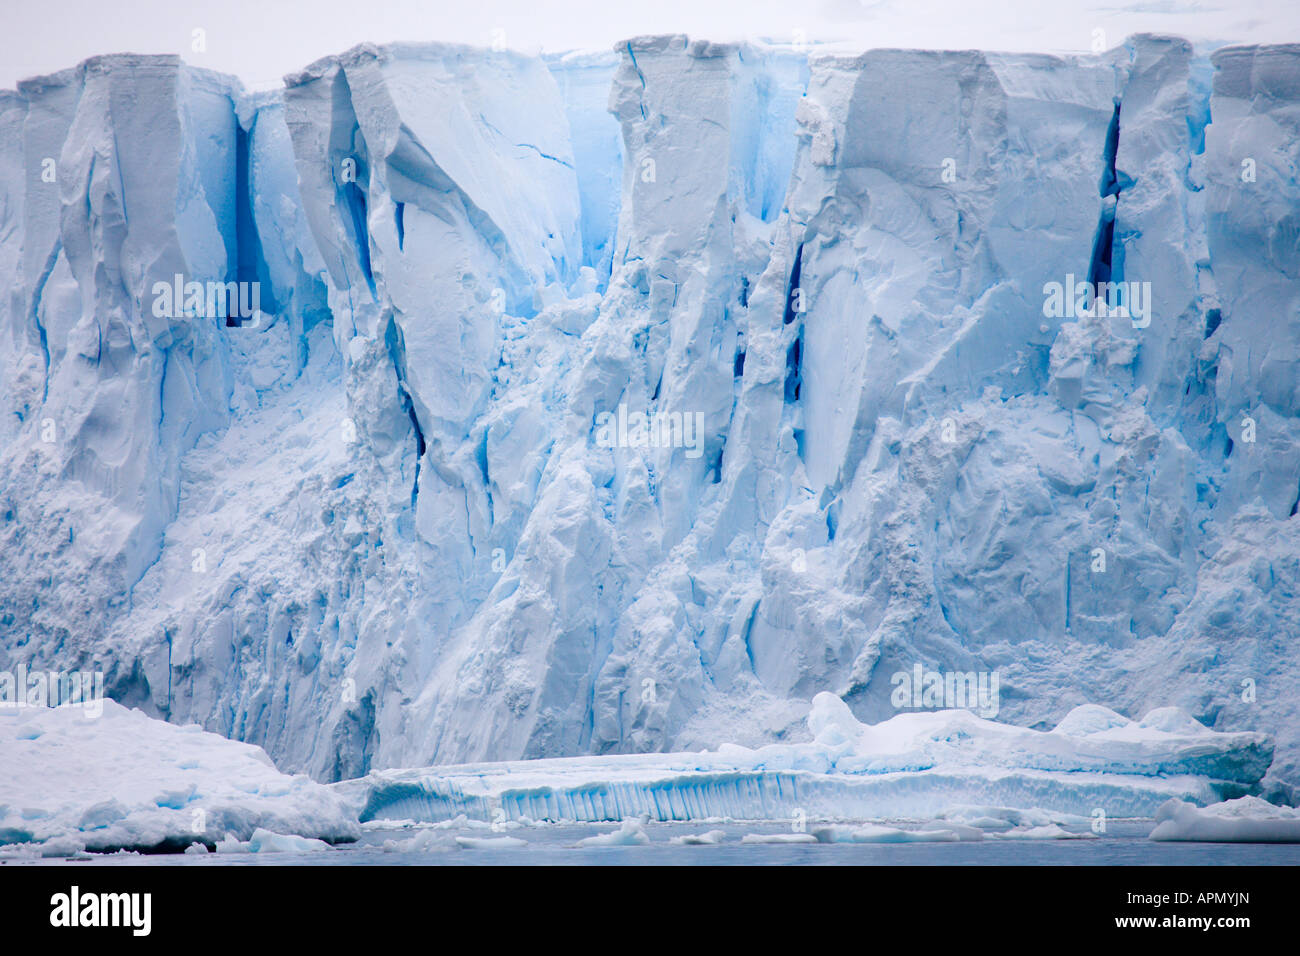 towering-glacier-in-paradise-harbour-ant